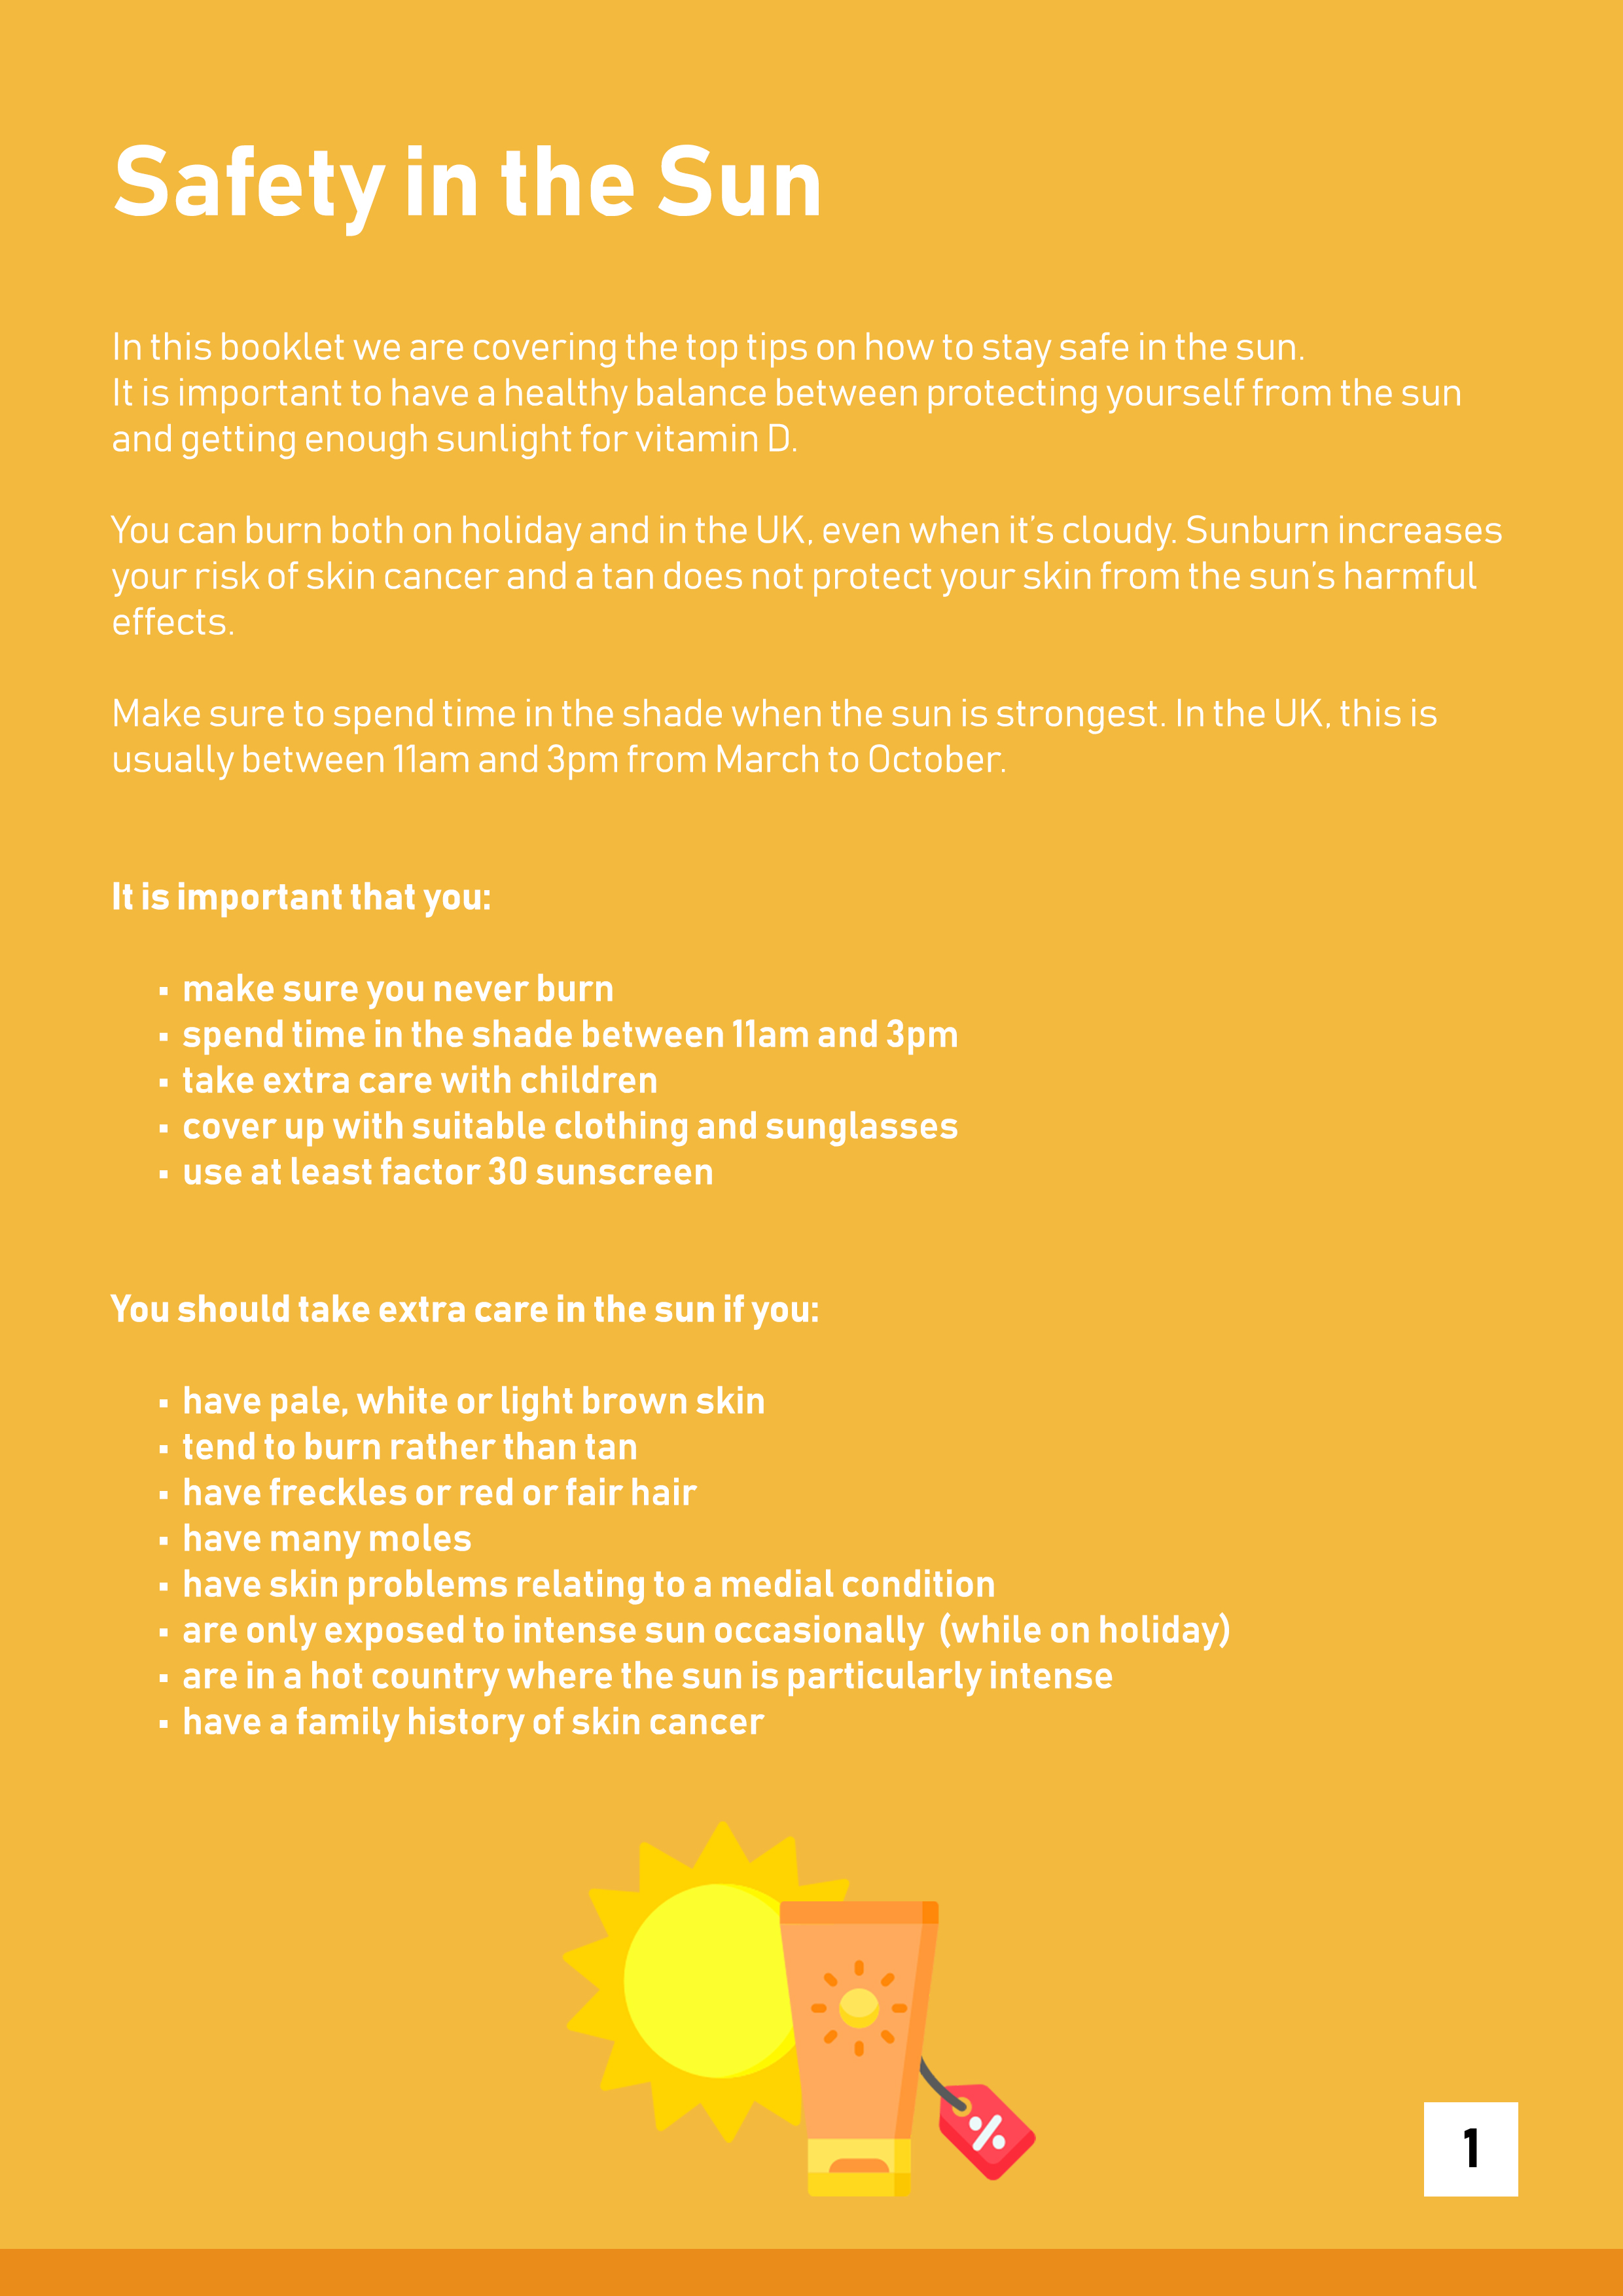 Safety in the Sun - Pg2.jpg